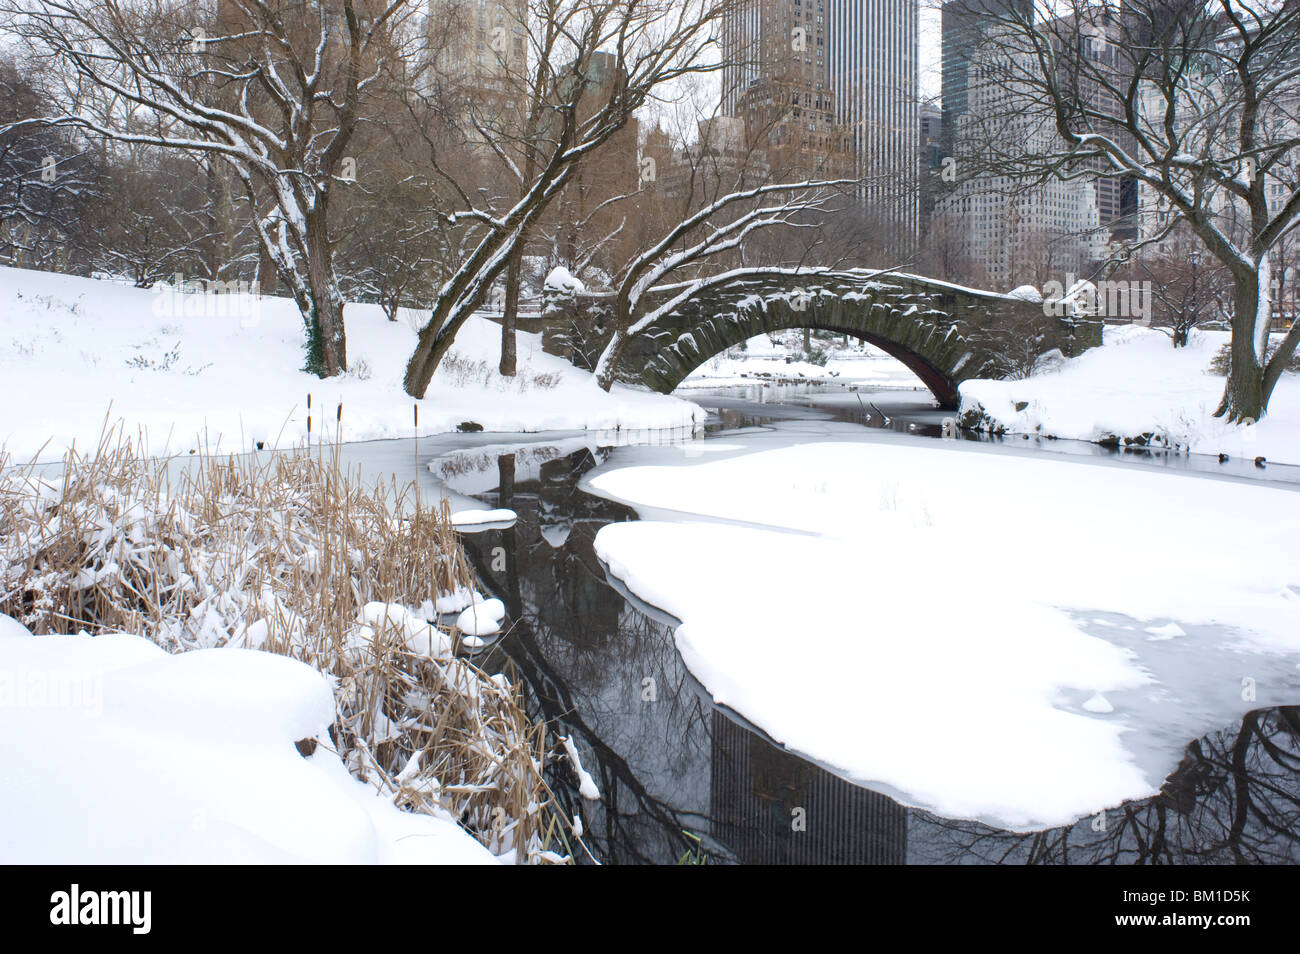 The Gapstow Bridge in early morning after a snowfall in Central Park, New York State, New York City, United States Stock Photo